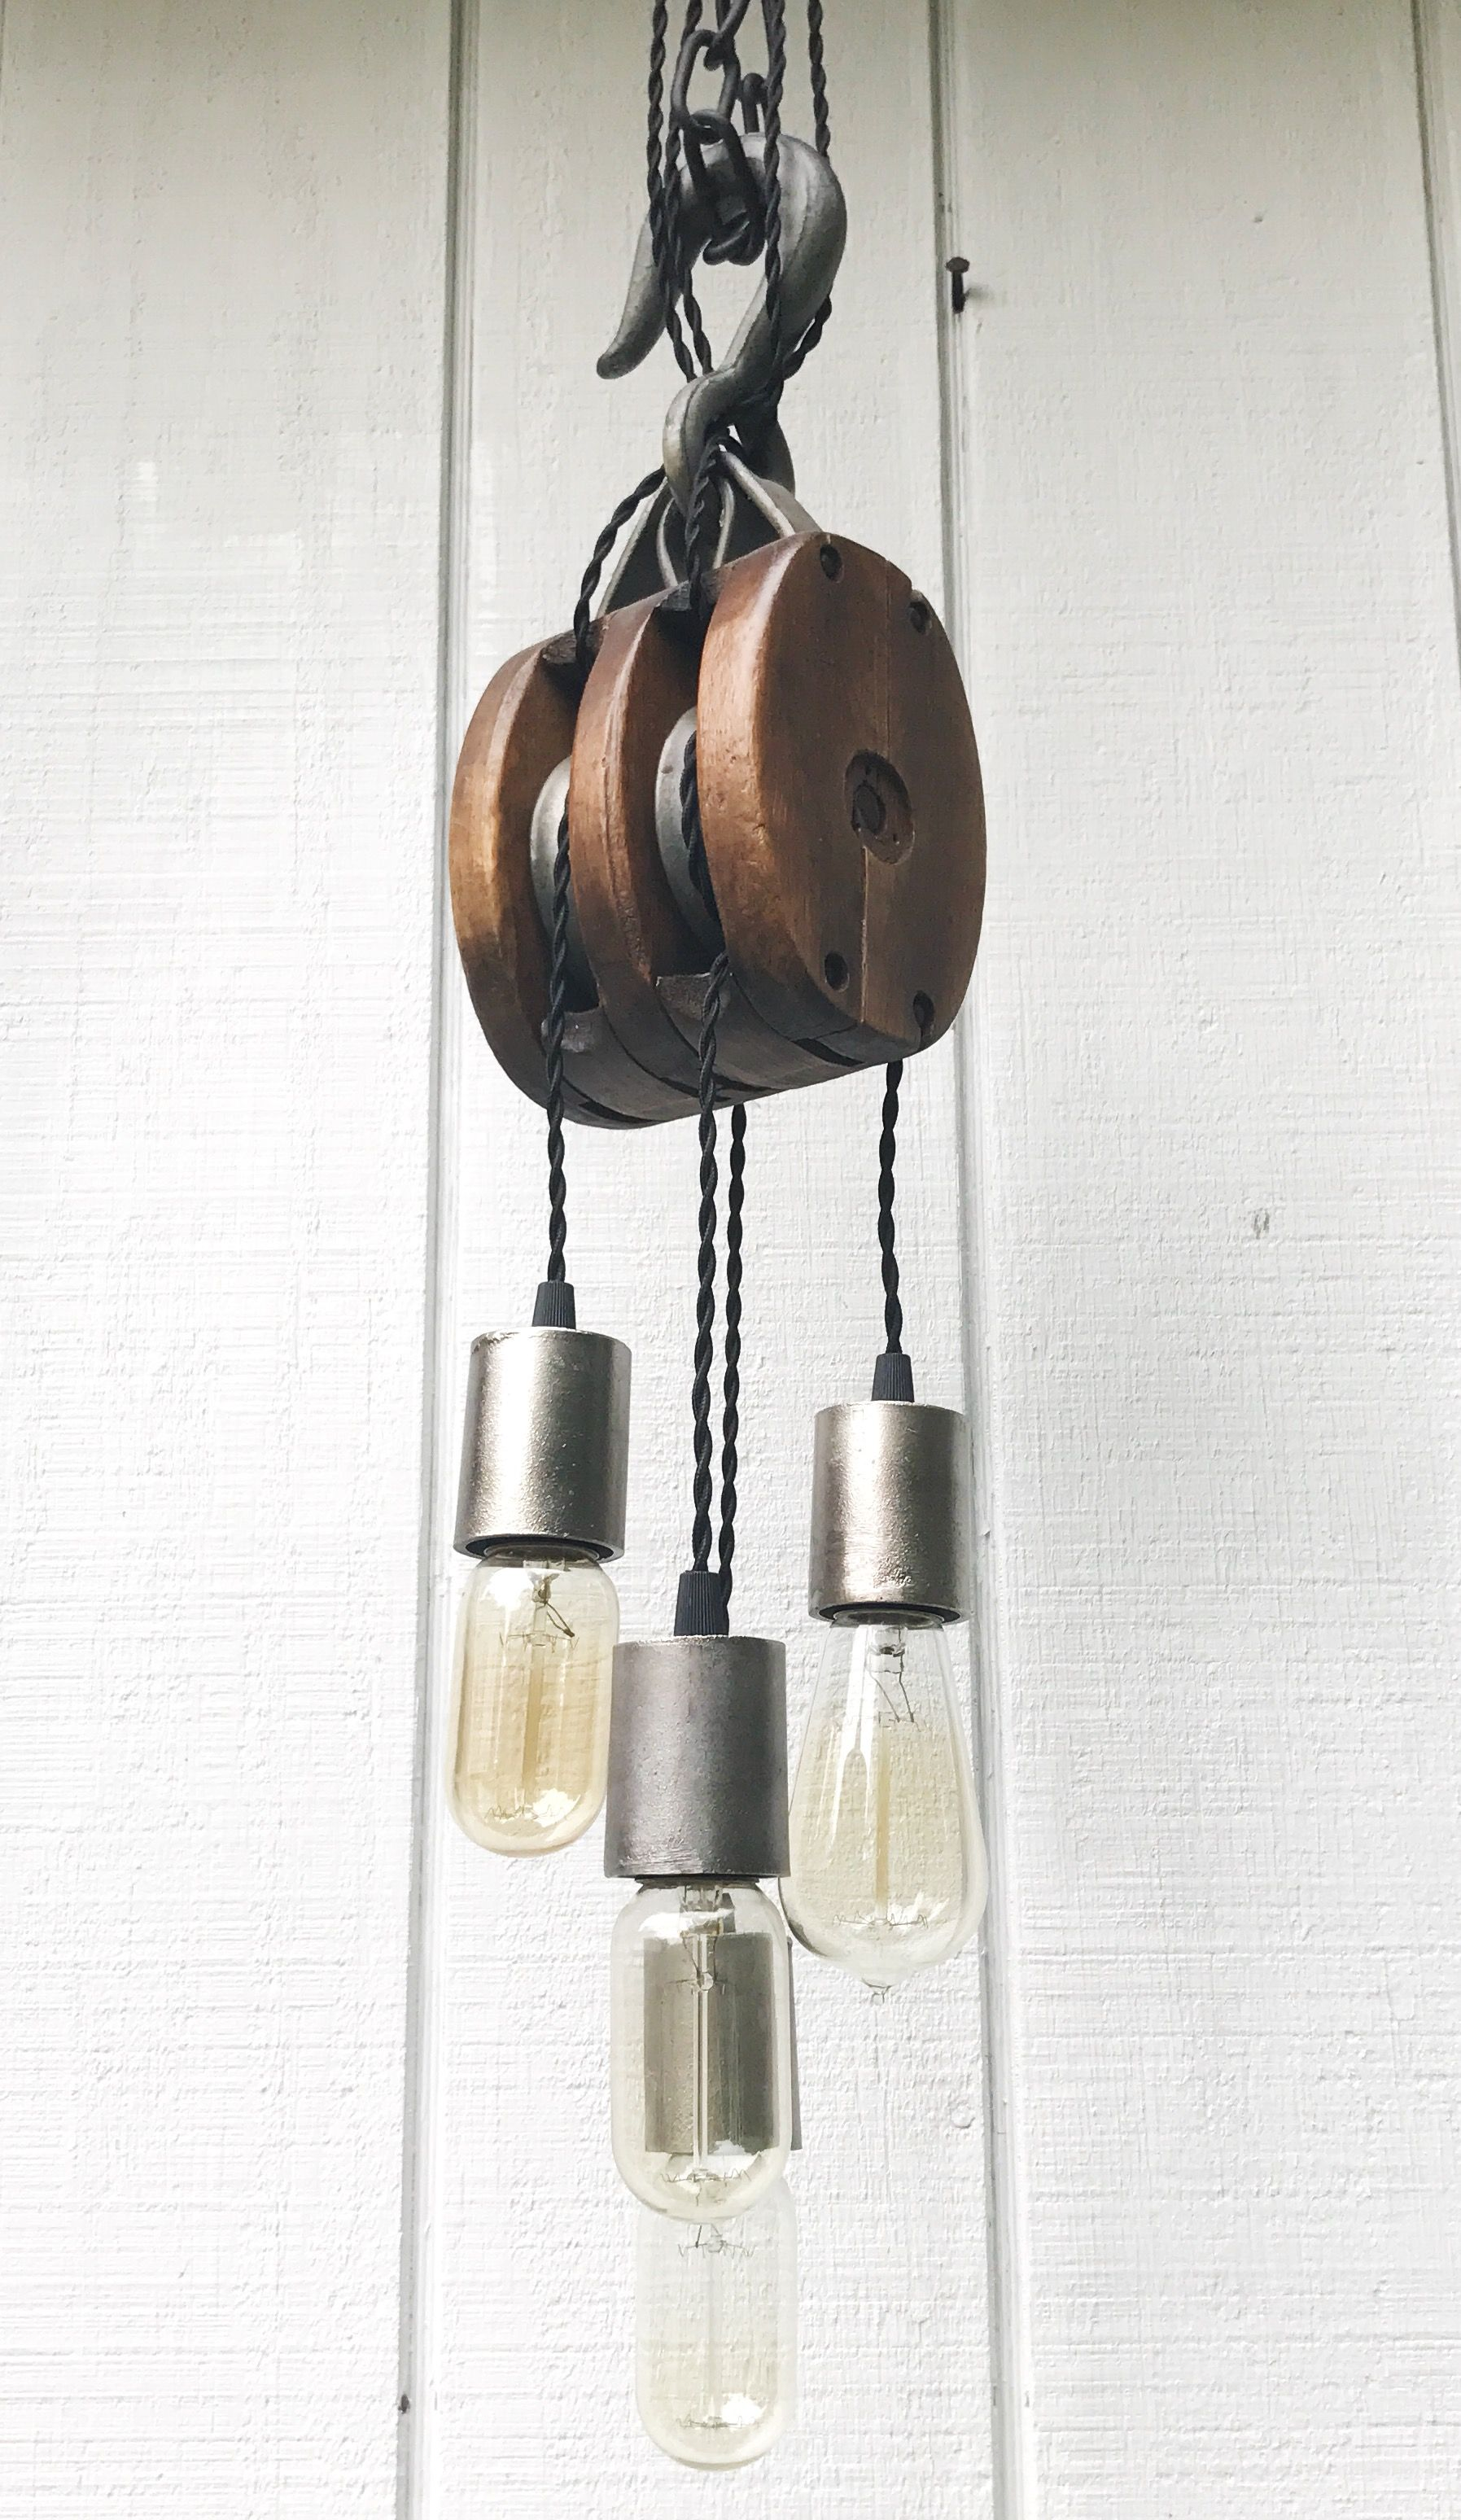 Antique Barn Pulley Fully Restored And Turned Light Fixture Pulley From Old Barn In The Adirondacks Antique Light Fixtures Pulley Light Fixture Pulley Light